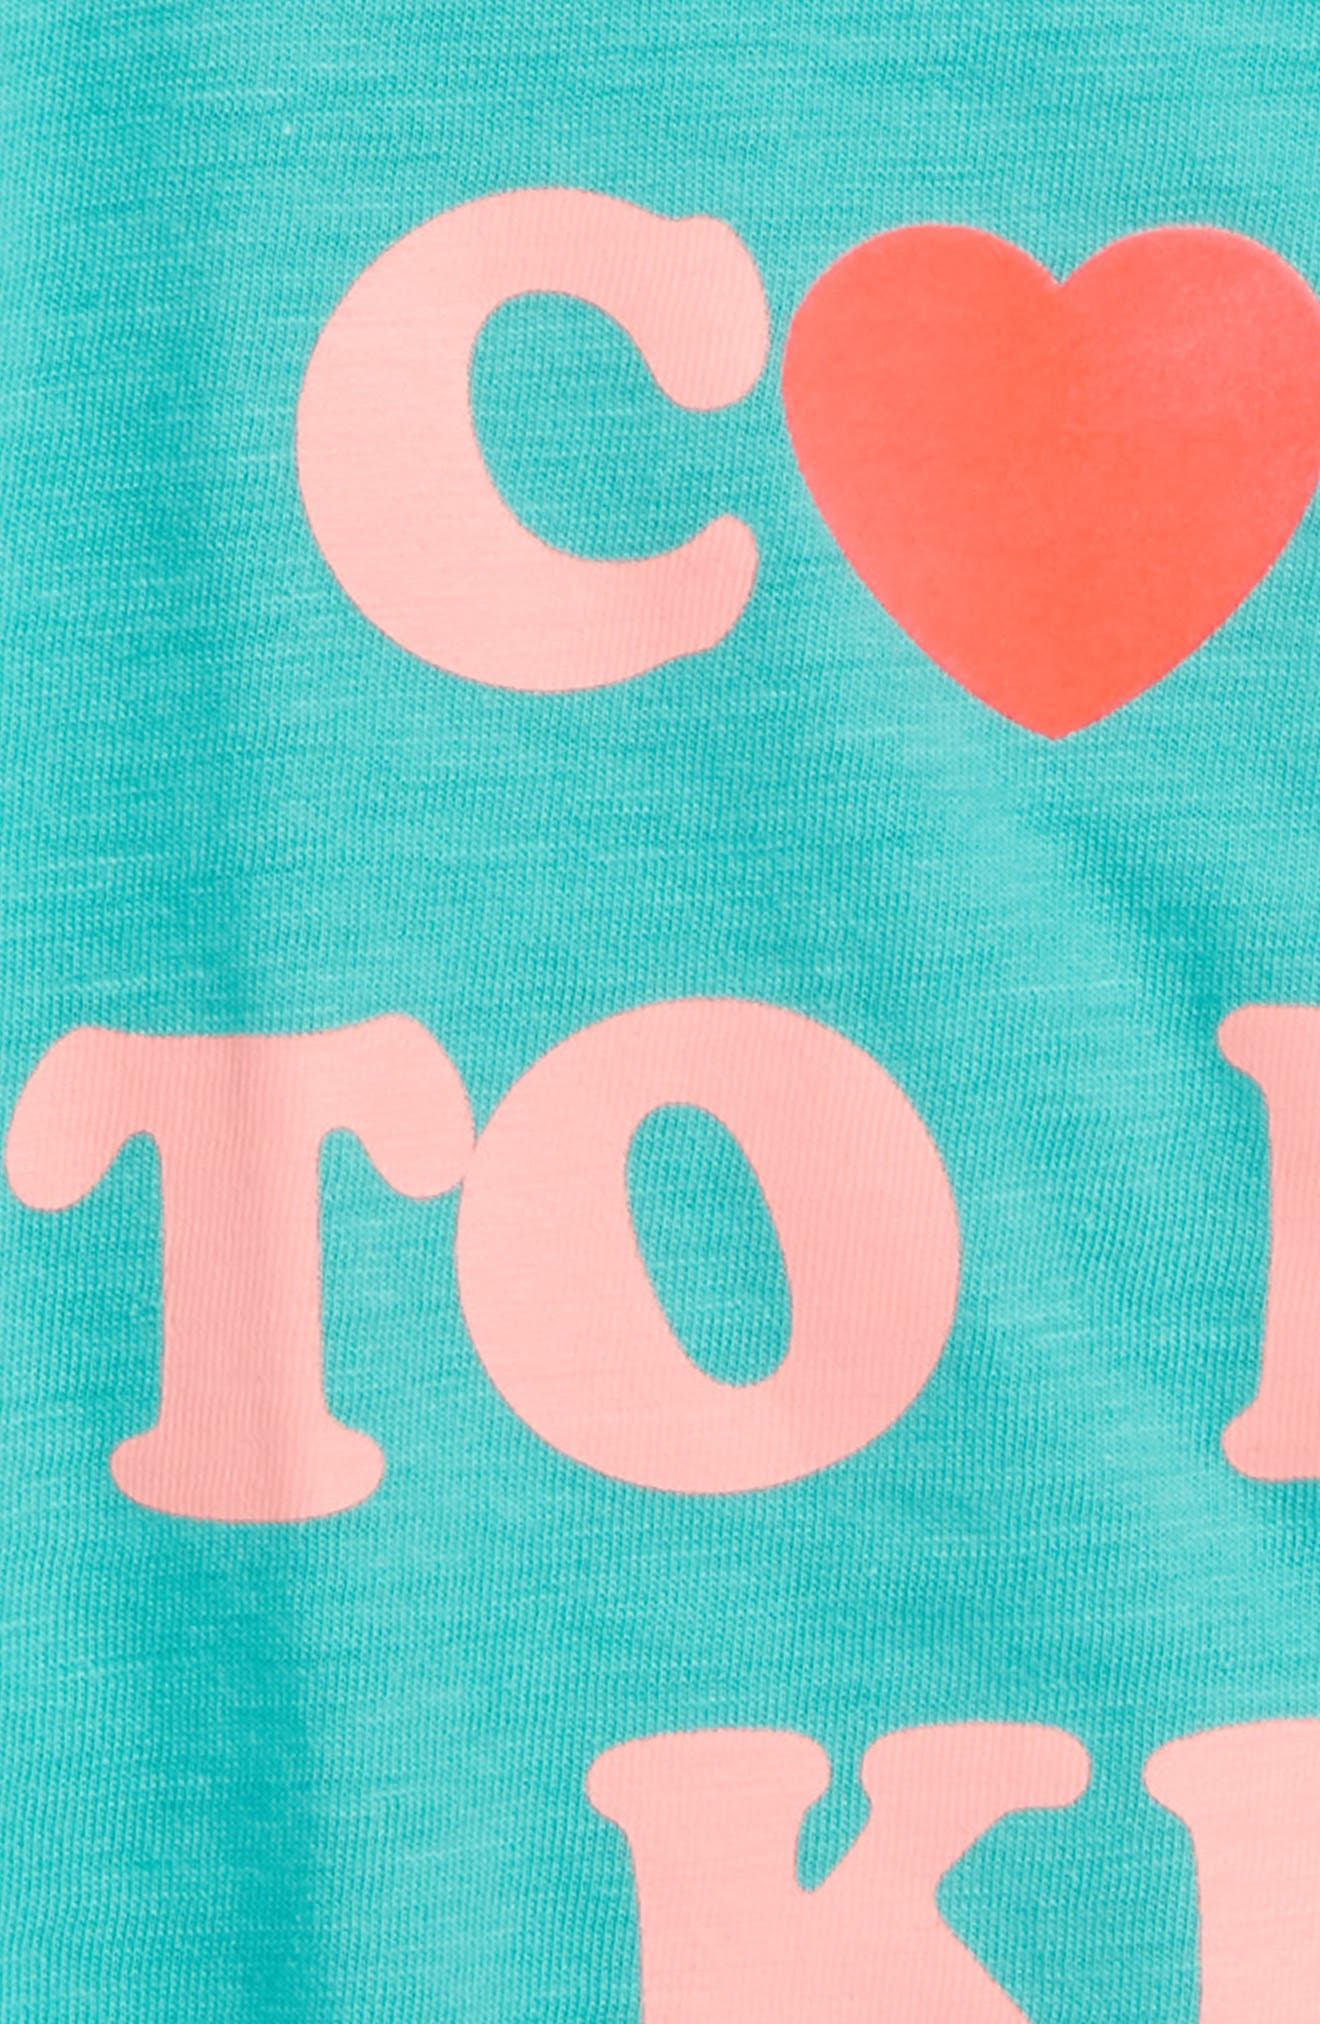 CREWCUTS BY J.CREW,                             crewcuts by J. Crew Cool to Be Kind Graphic Tee,                             Alternate thumbnail 2, color,                             300